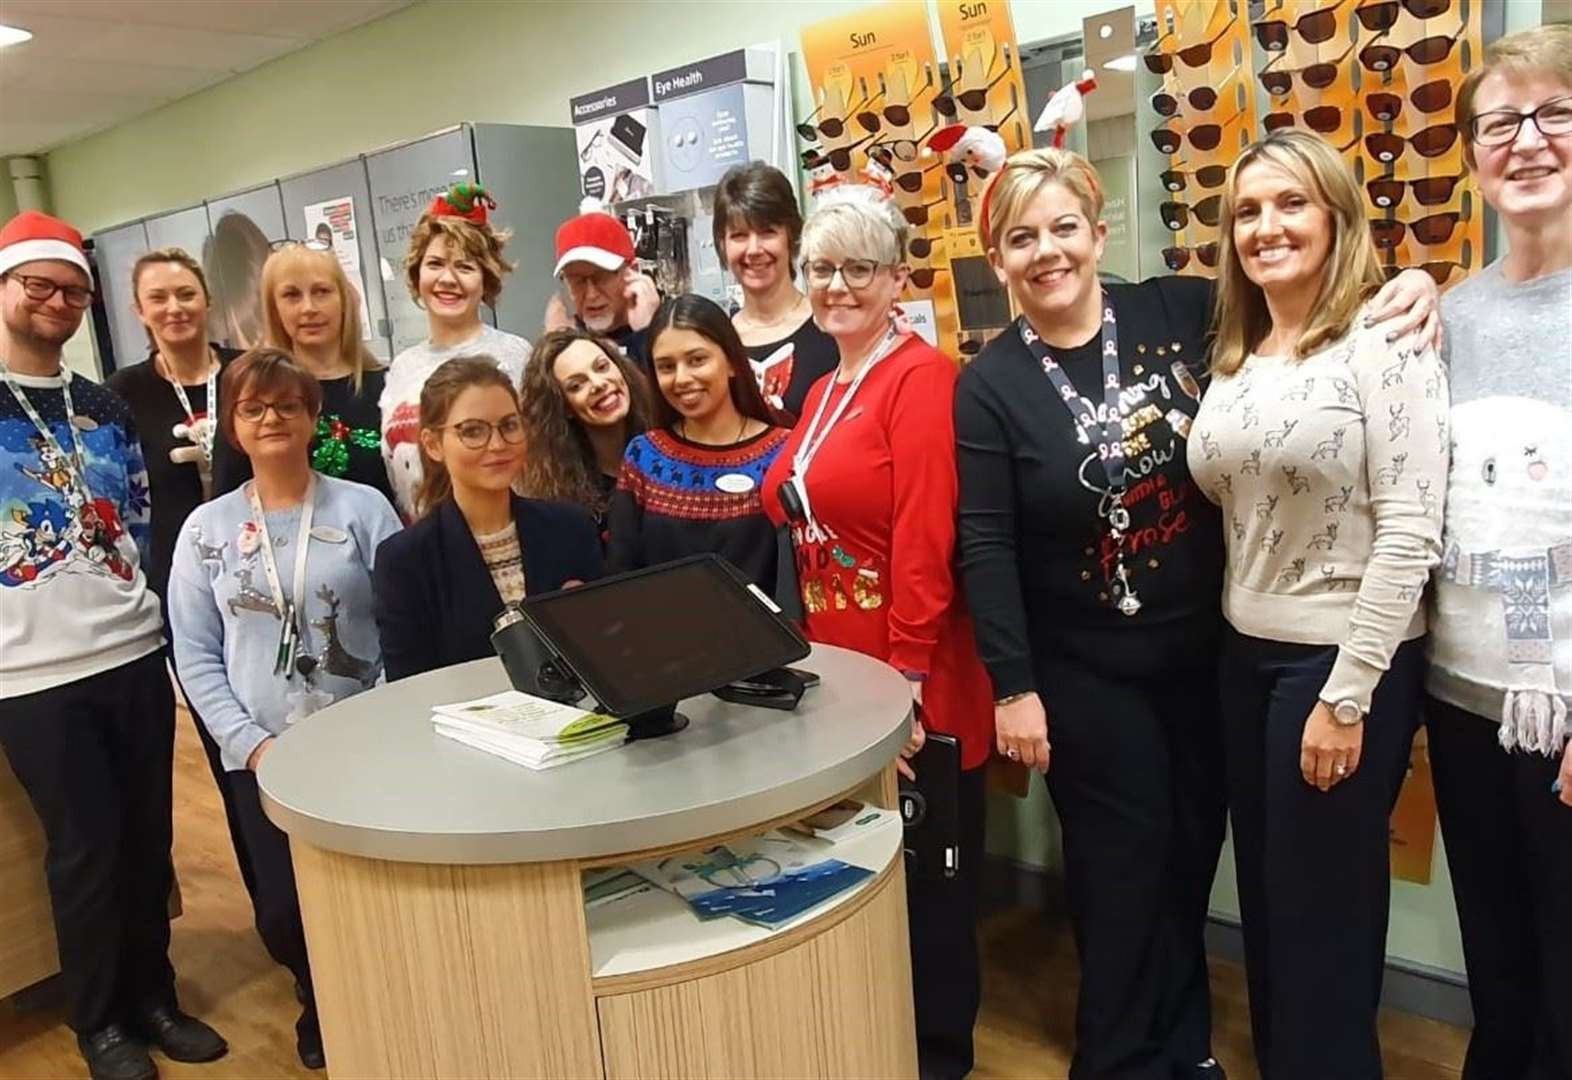 Christmas spirit raises money for a good cause at Grantham opticians